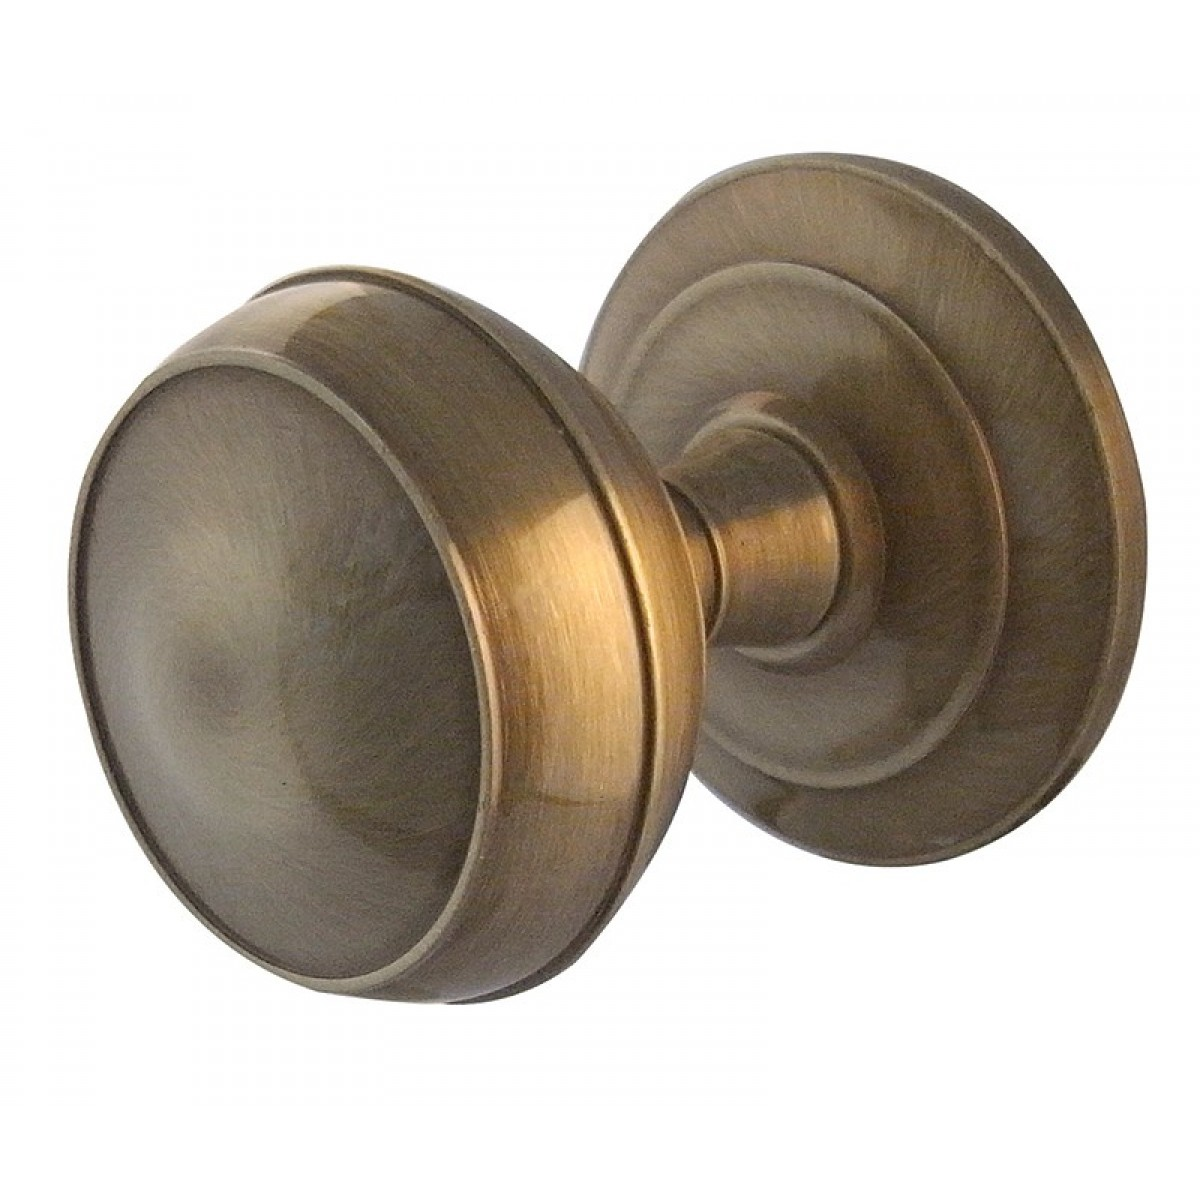 metal door knob photo - 4